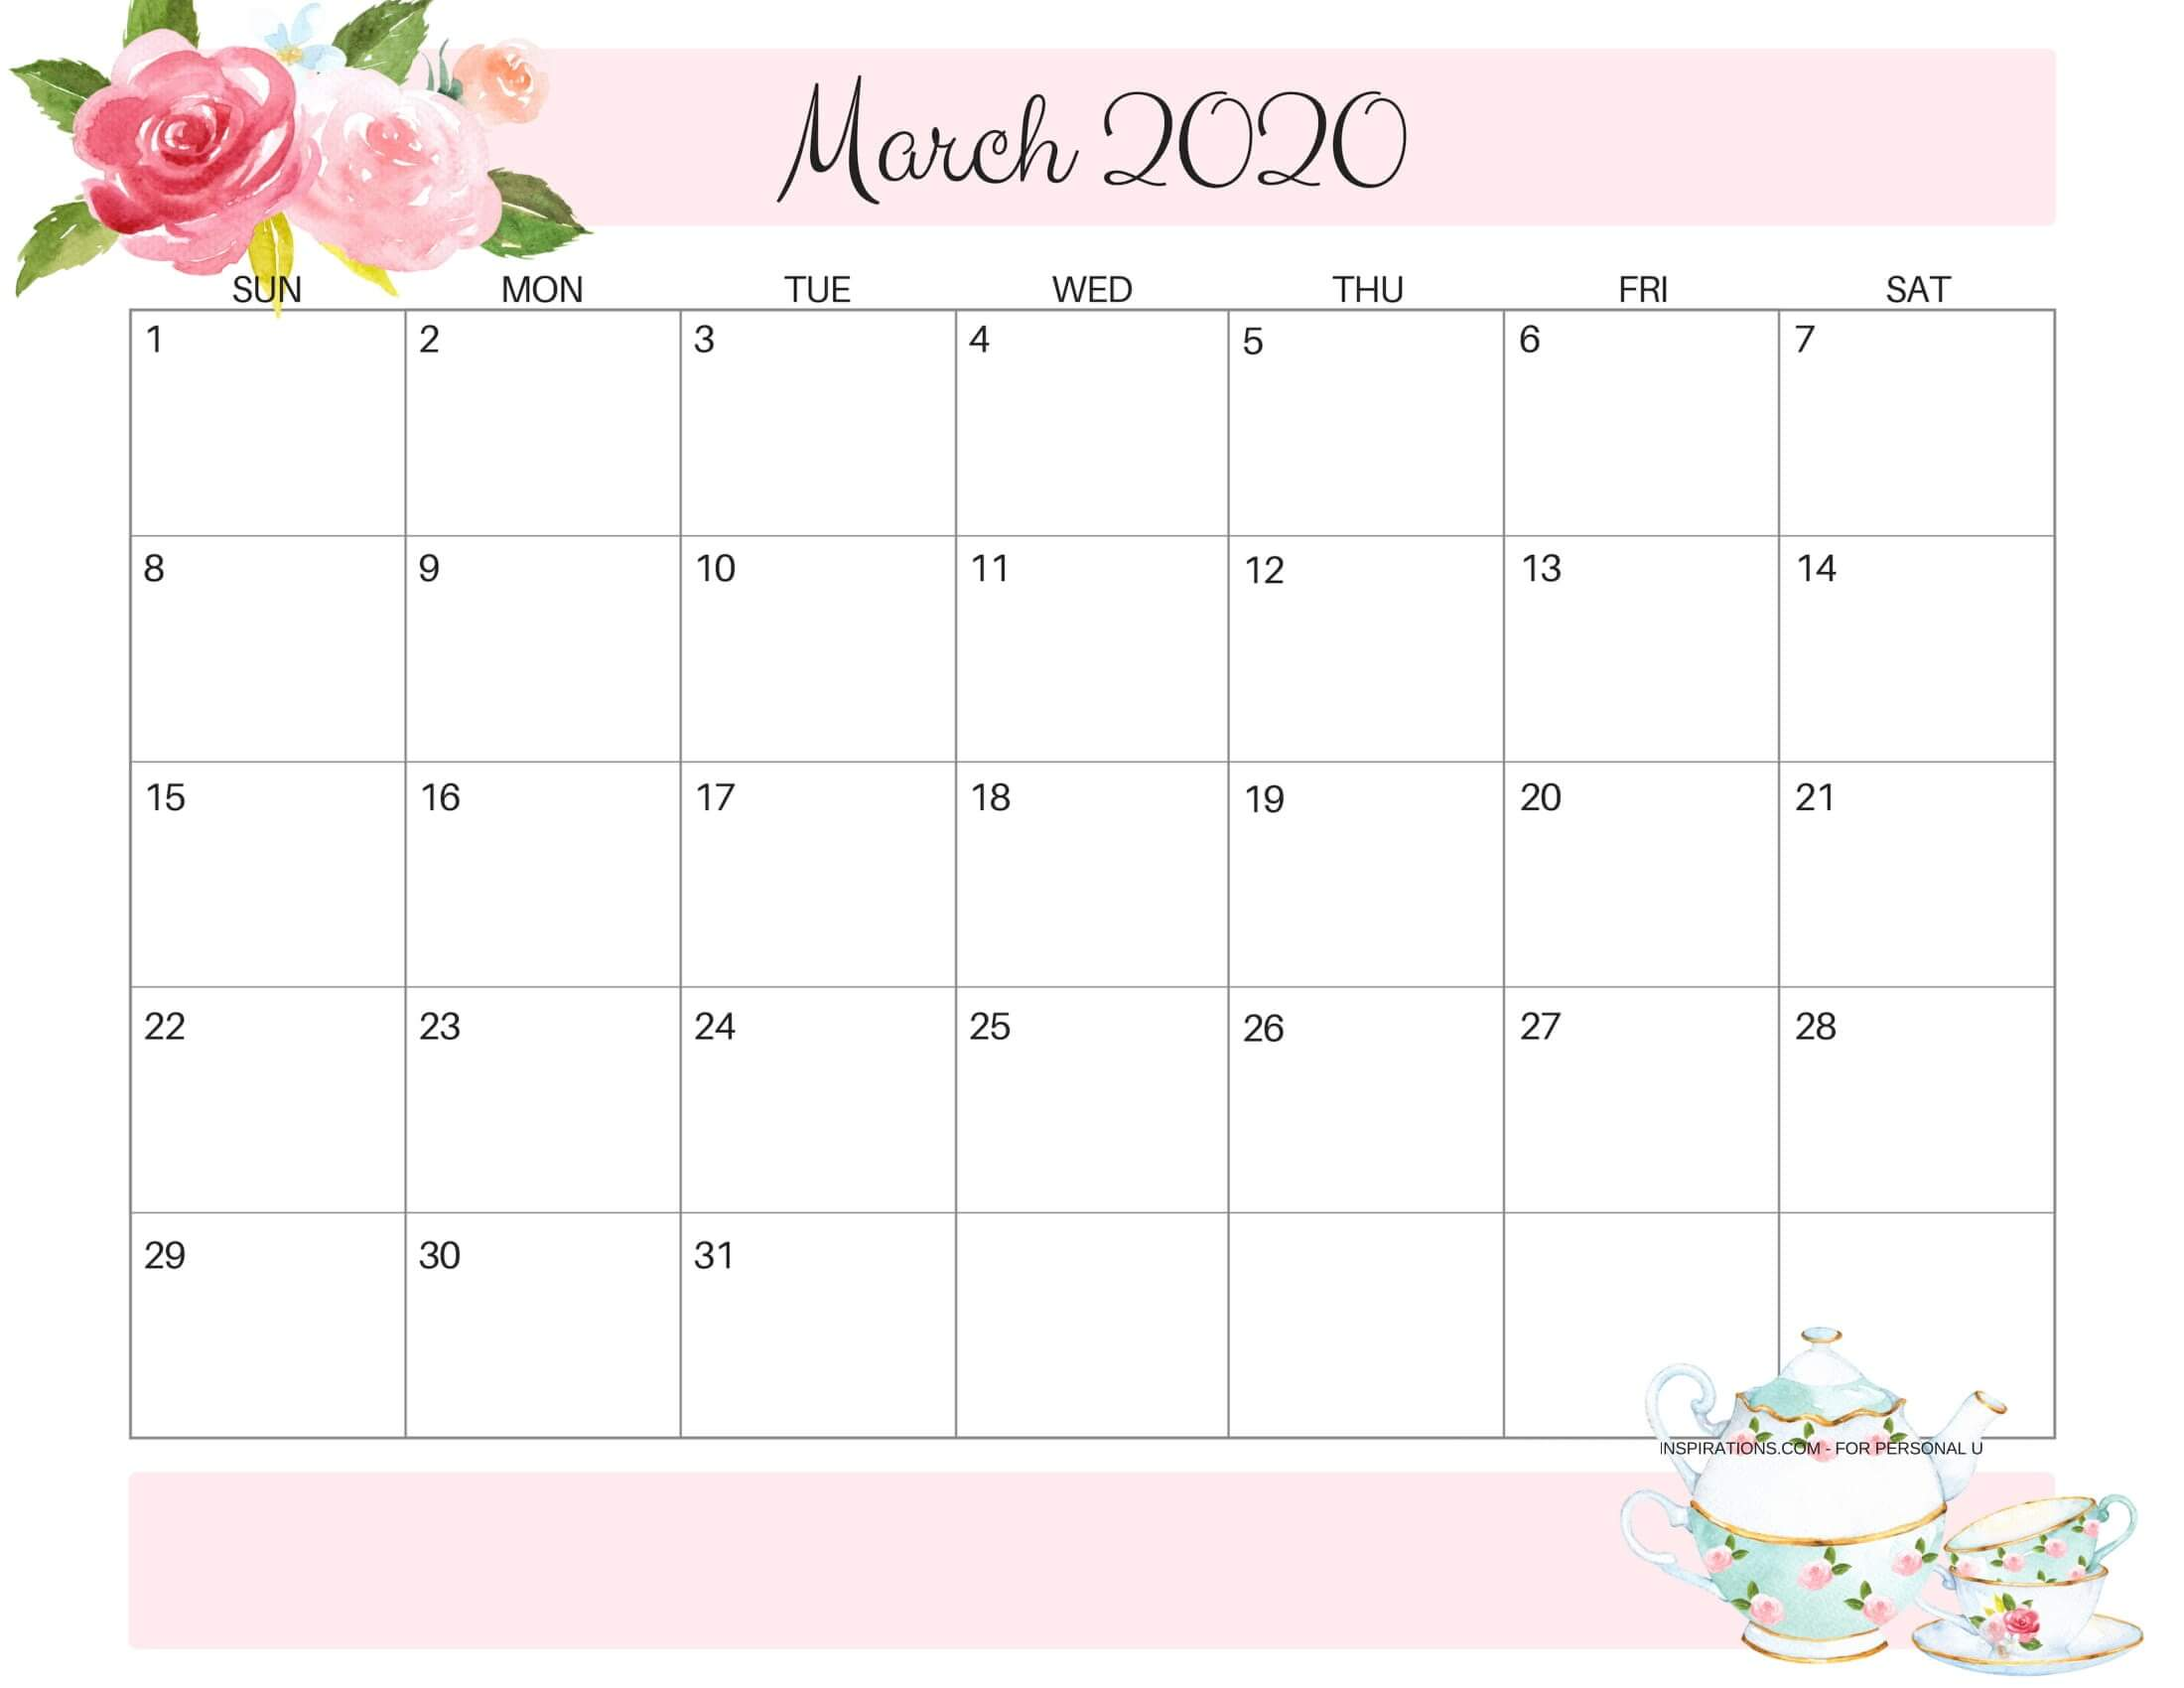 Cute March 2020 Calendar Archives   2019 Calendars for Students 2200x1700